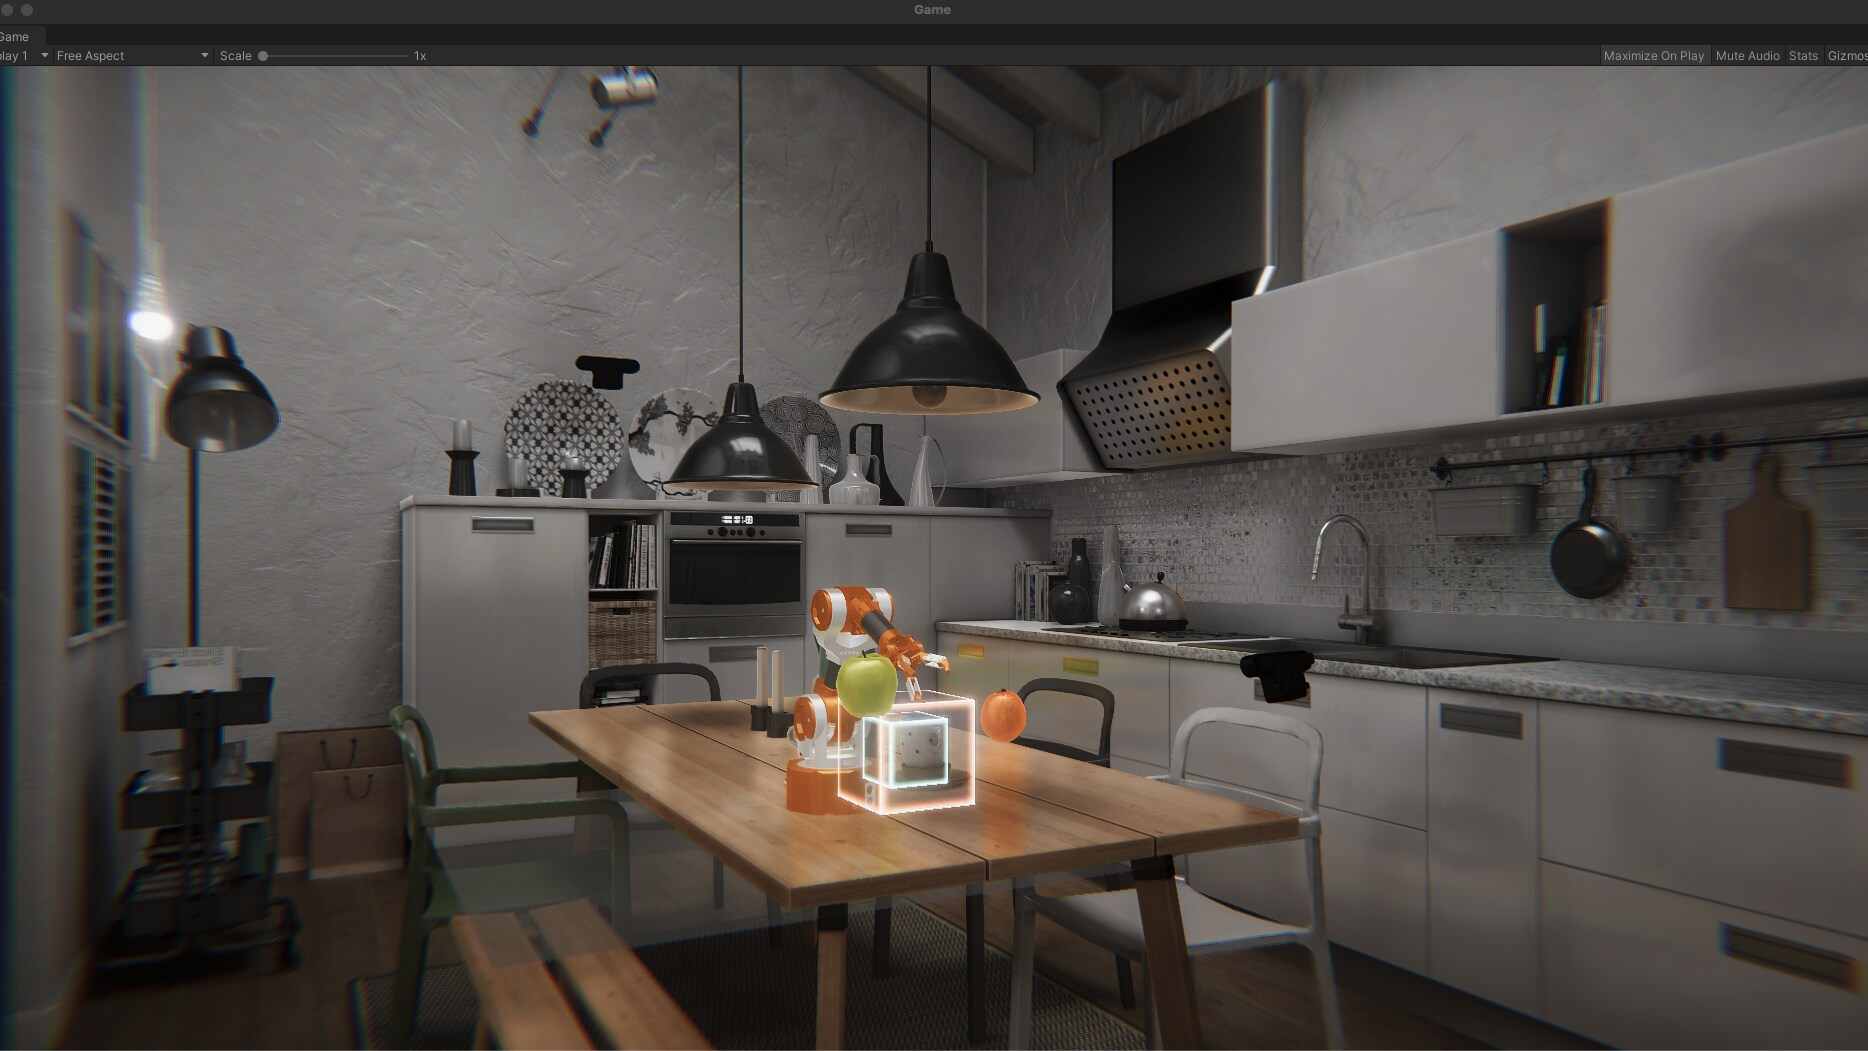 kitchen digital twin with a robot on a dining table